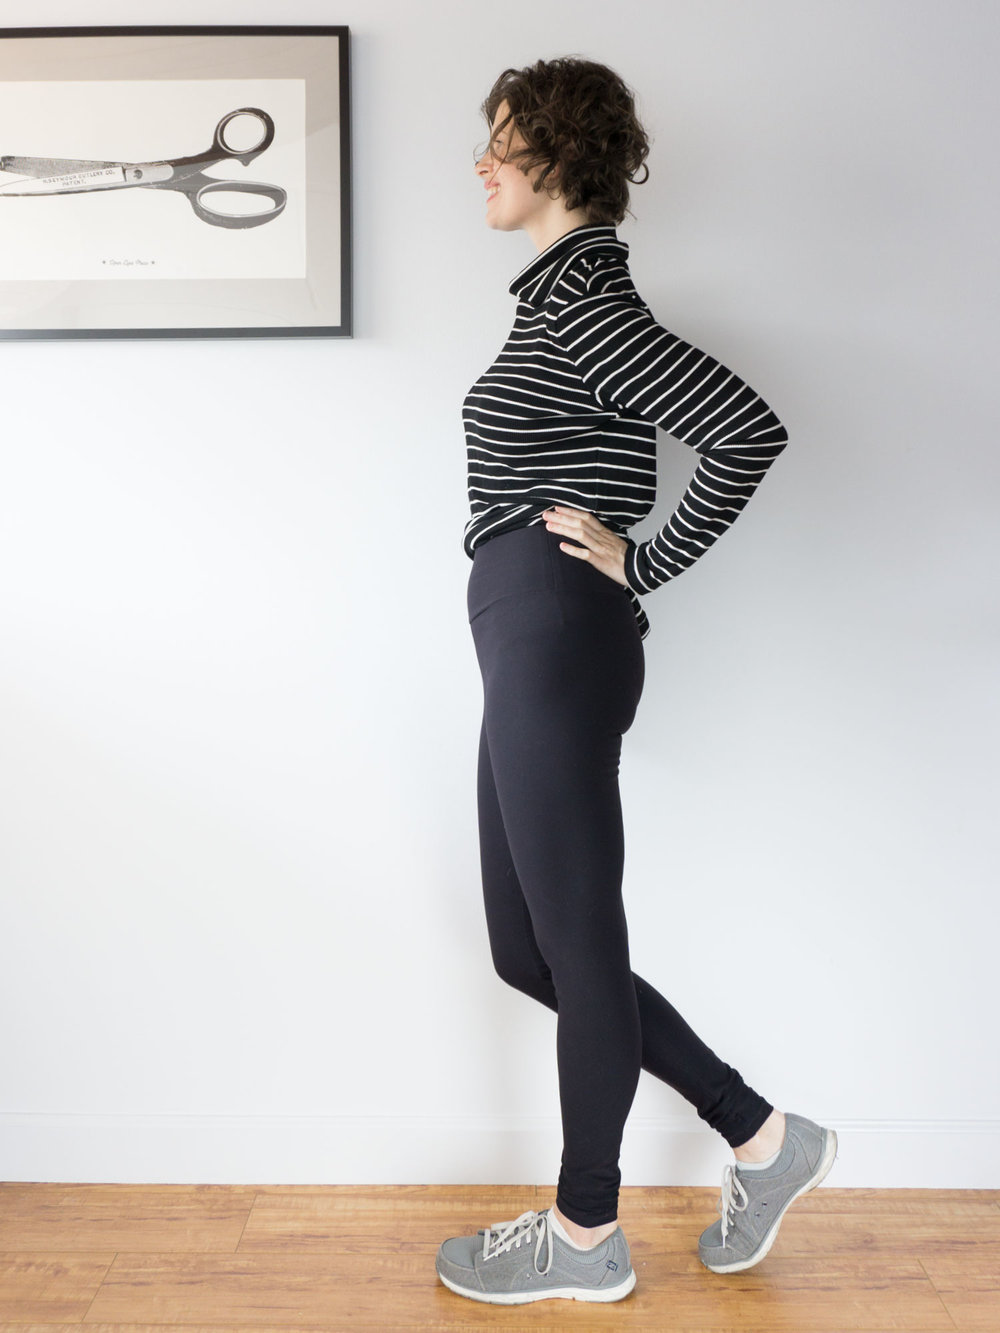 DIY Compression Leggings – Review of the Avery Leggings pattern by Helen's Closet